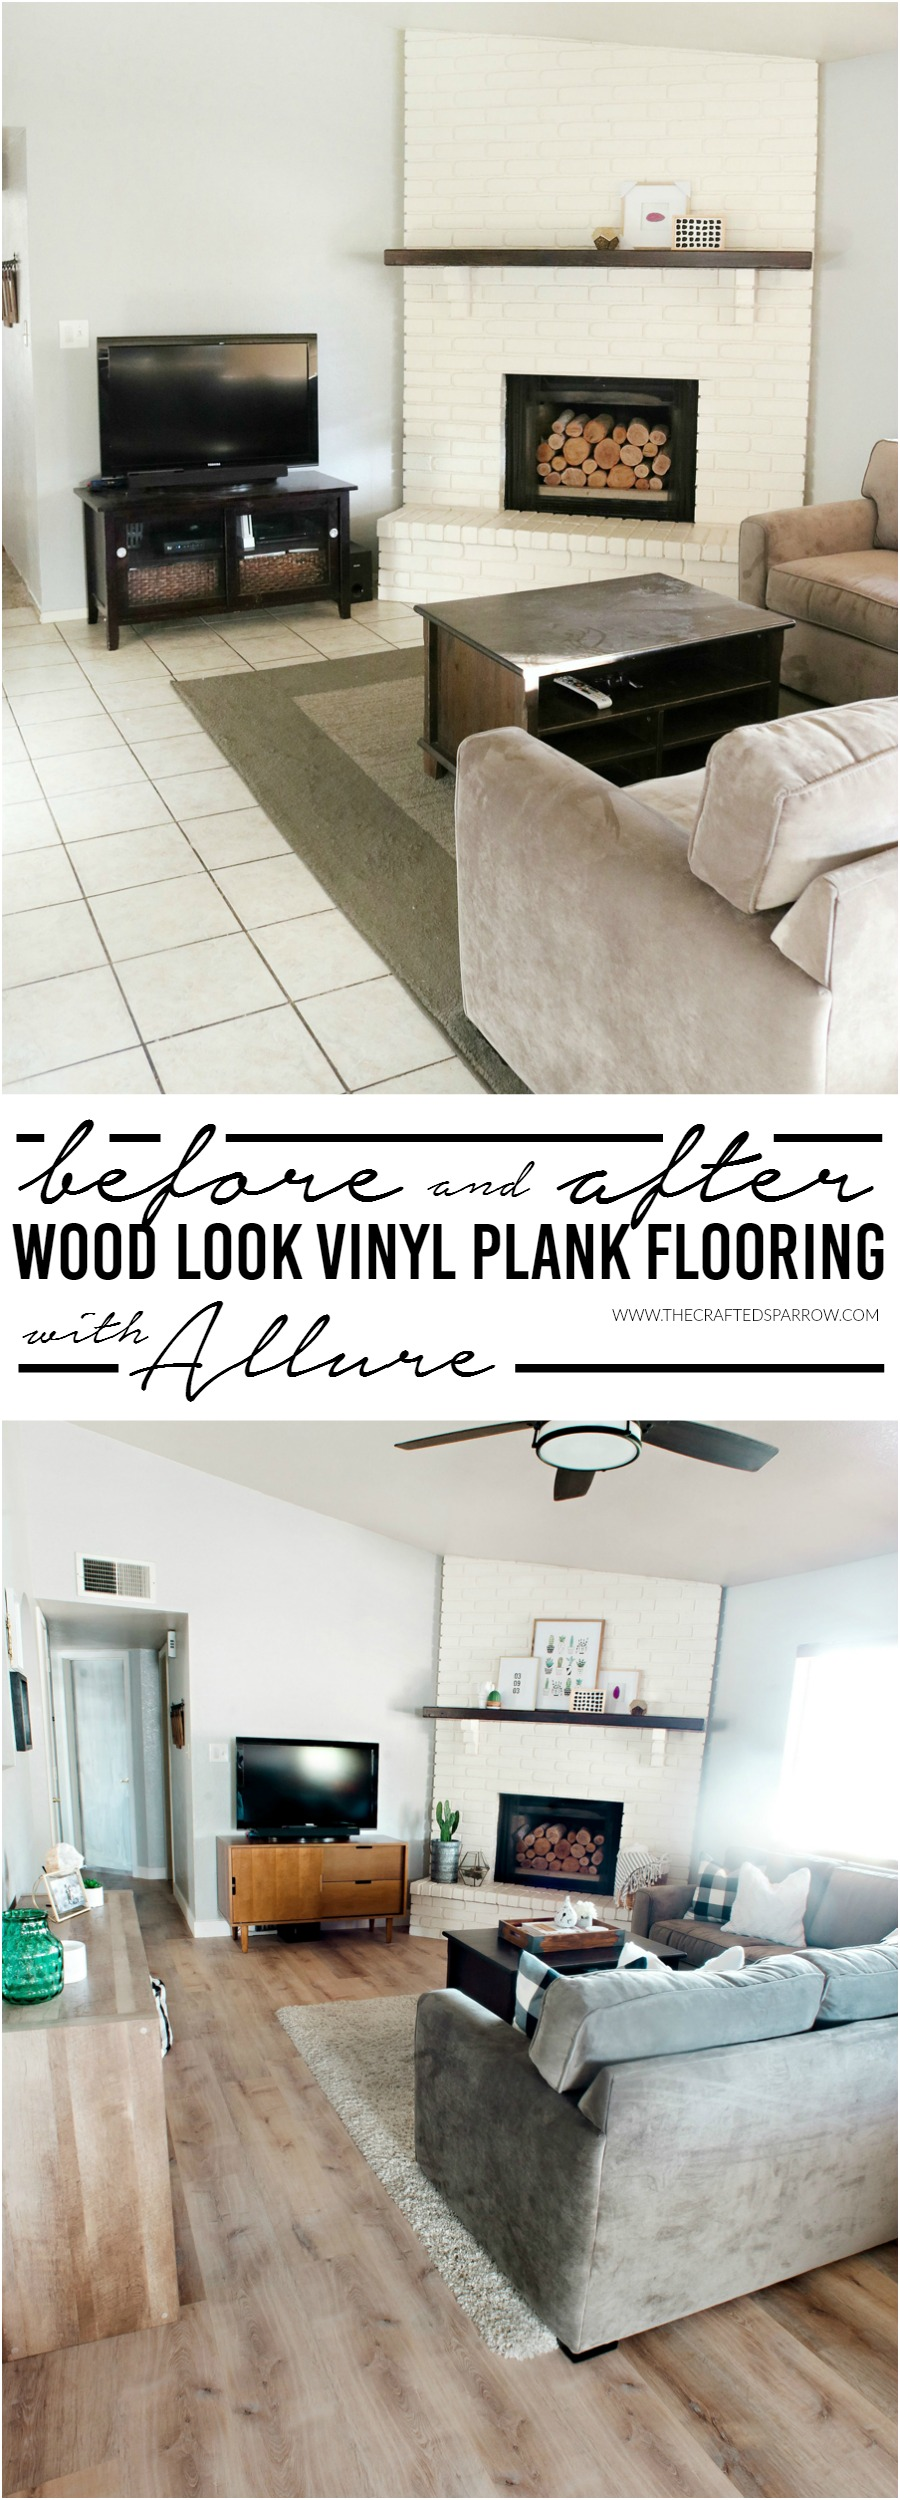 Before After Allure Flooring